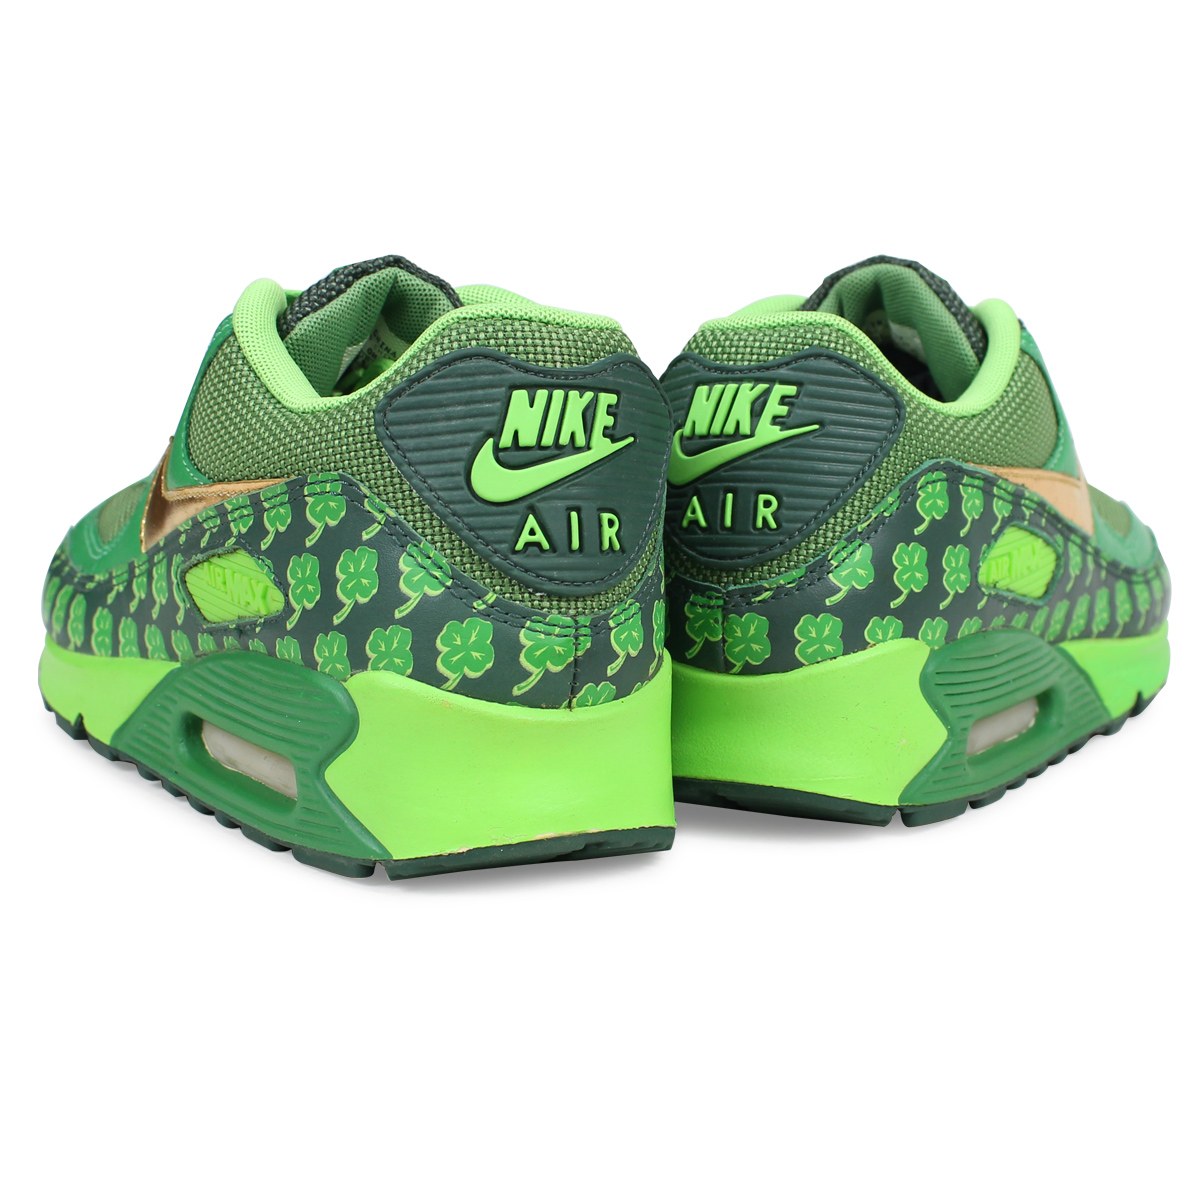 cheap for discount 64be0 93399 NIKE AIR MAX 90 QK ST PATRICK Kie Ney AMAX 90 classical music sneakers men  green 314,864-371 183